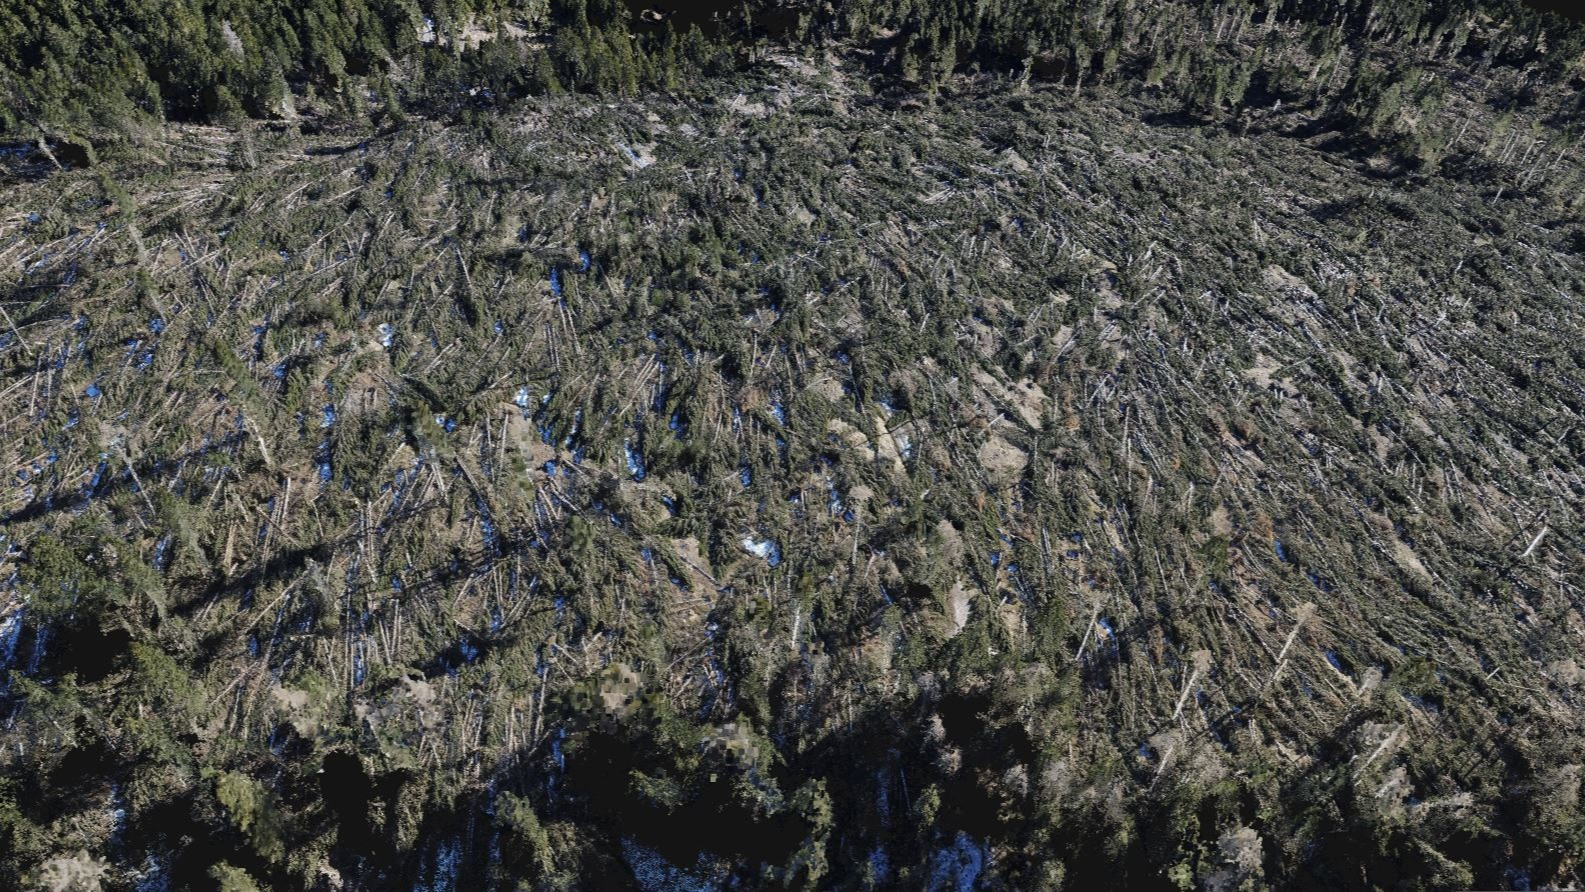 3D model created with drones of the Paneveggio Natural Park Italy after a windstorm